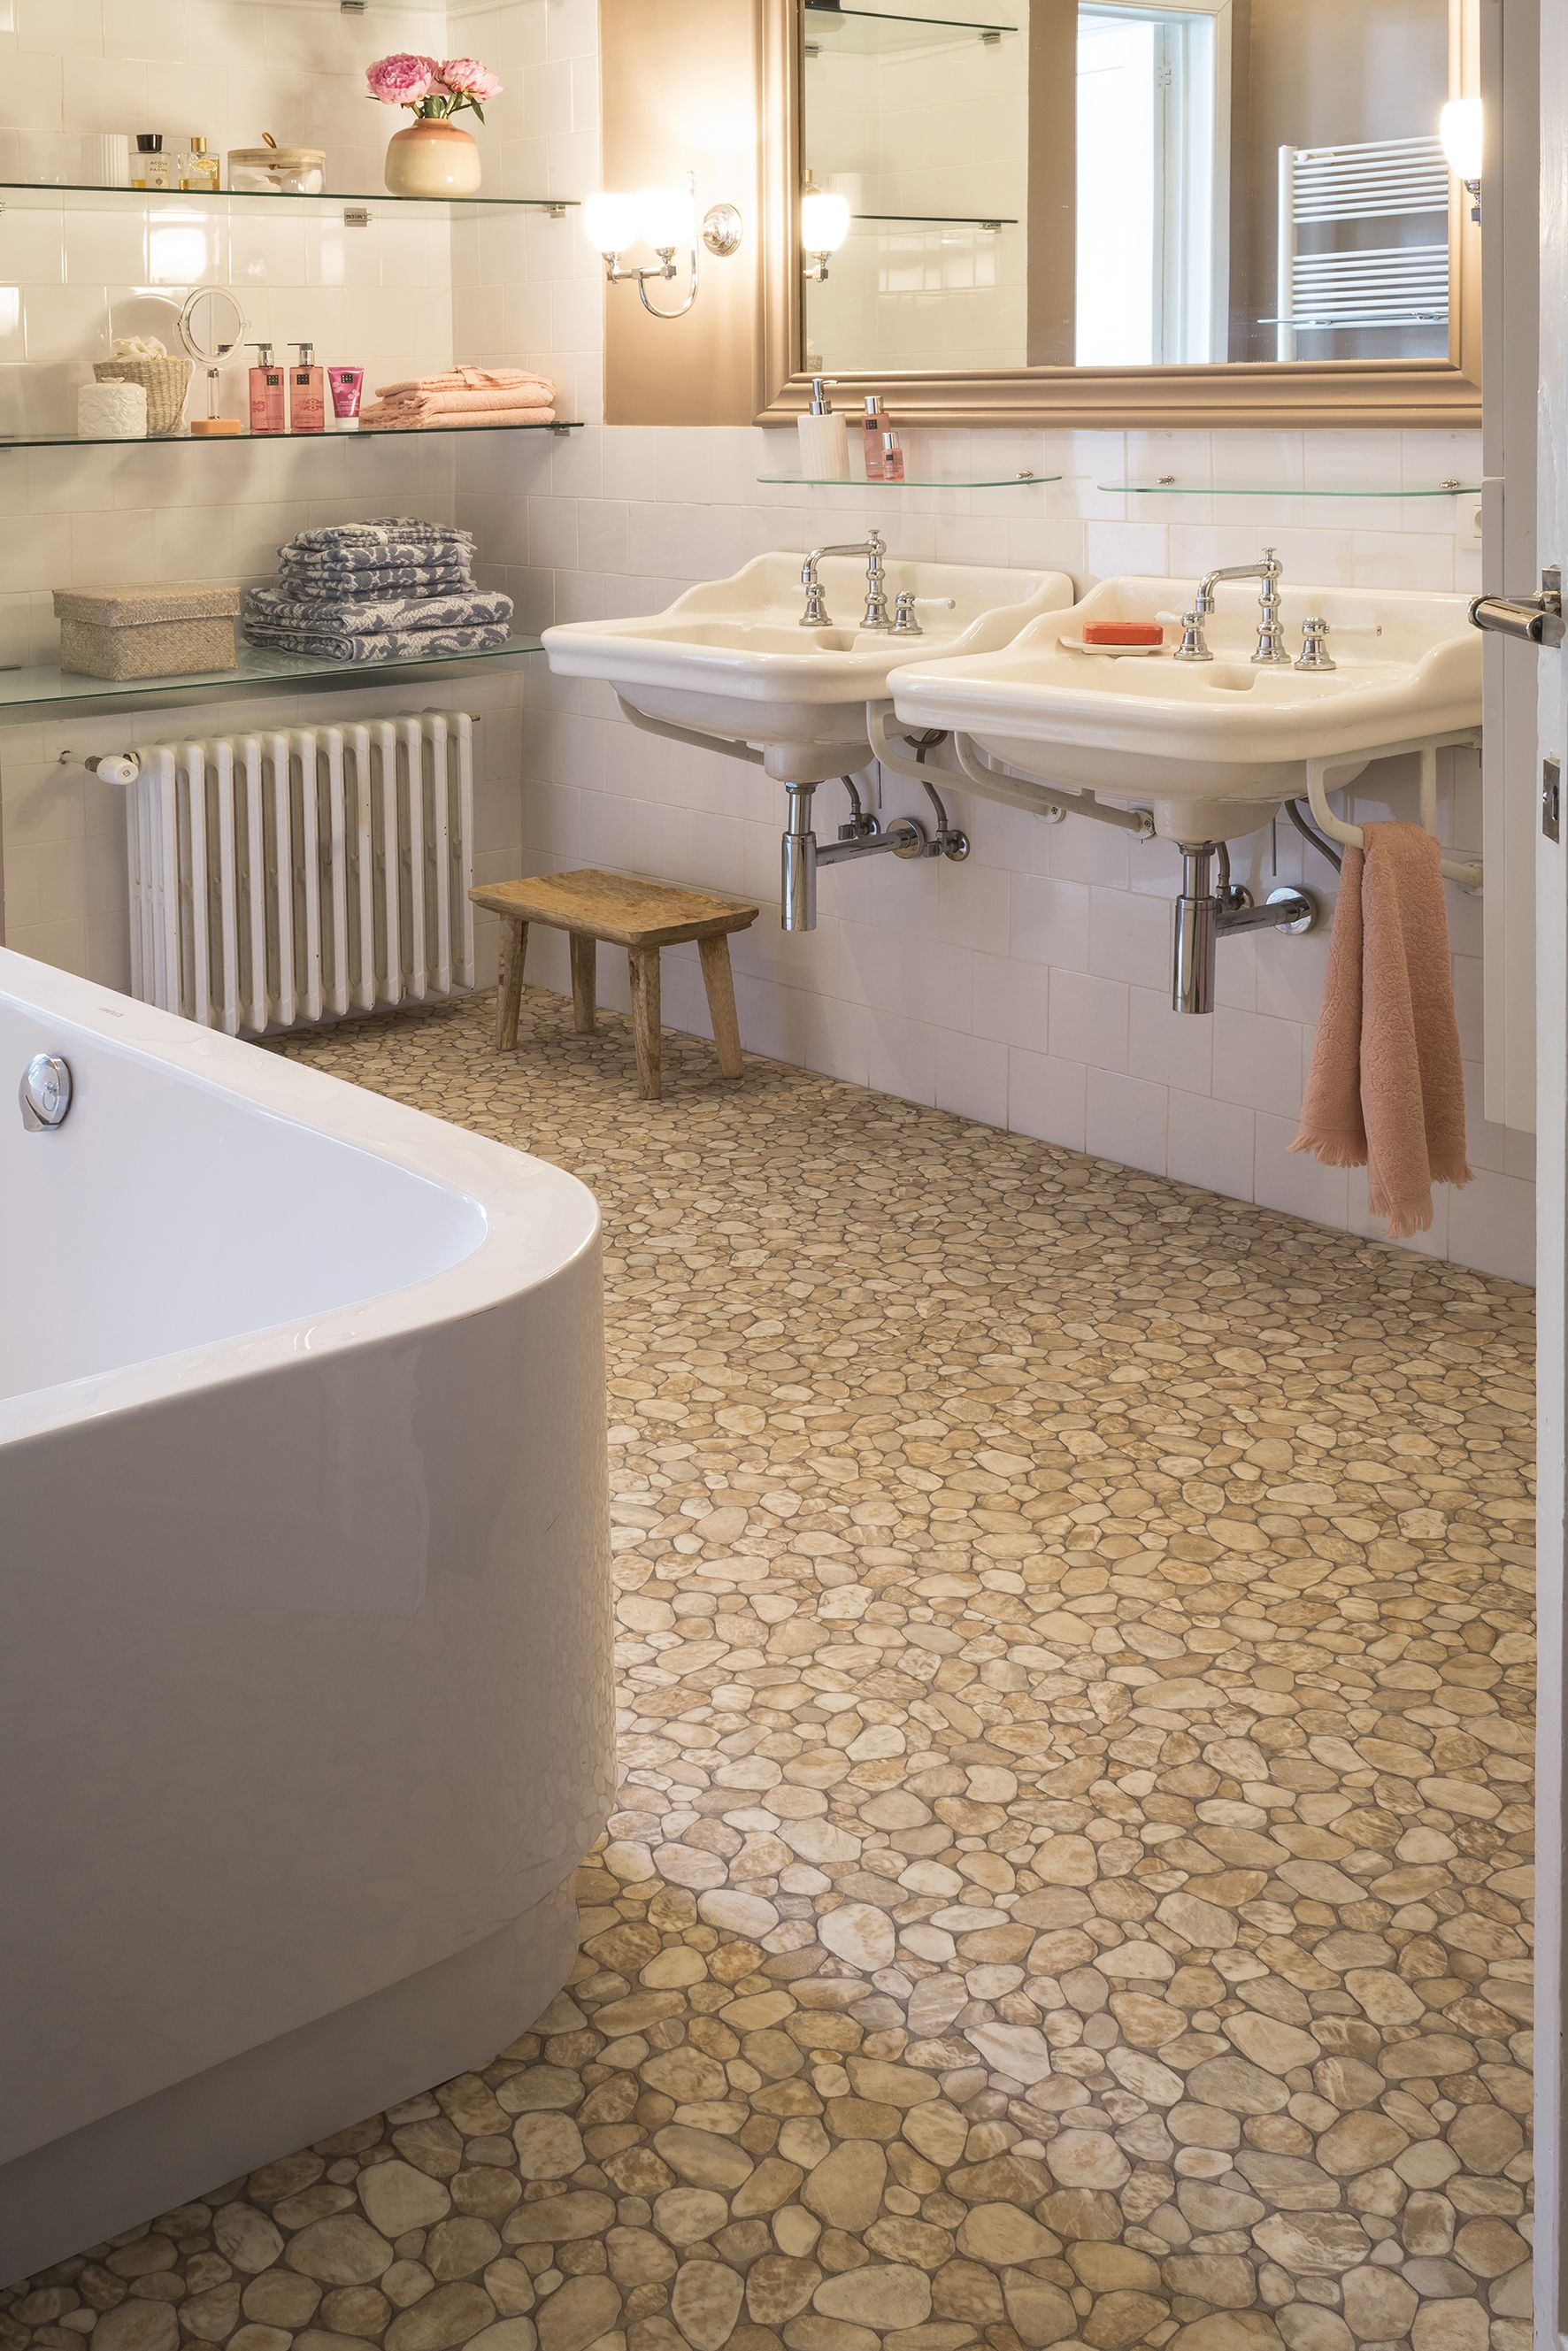 Welcome To Our Mikado Design A Complementing Pebble Look For Bathroom Settings